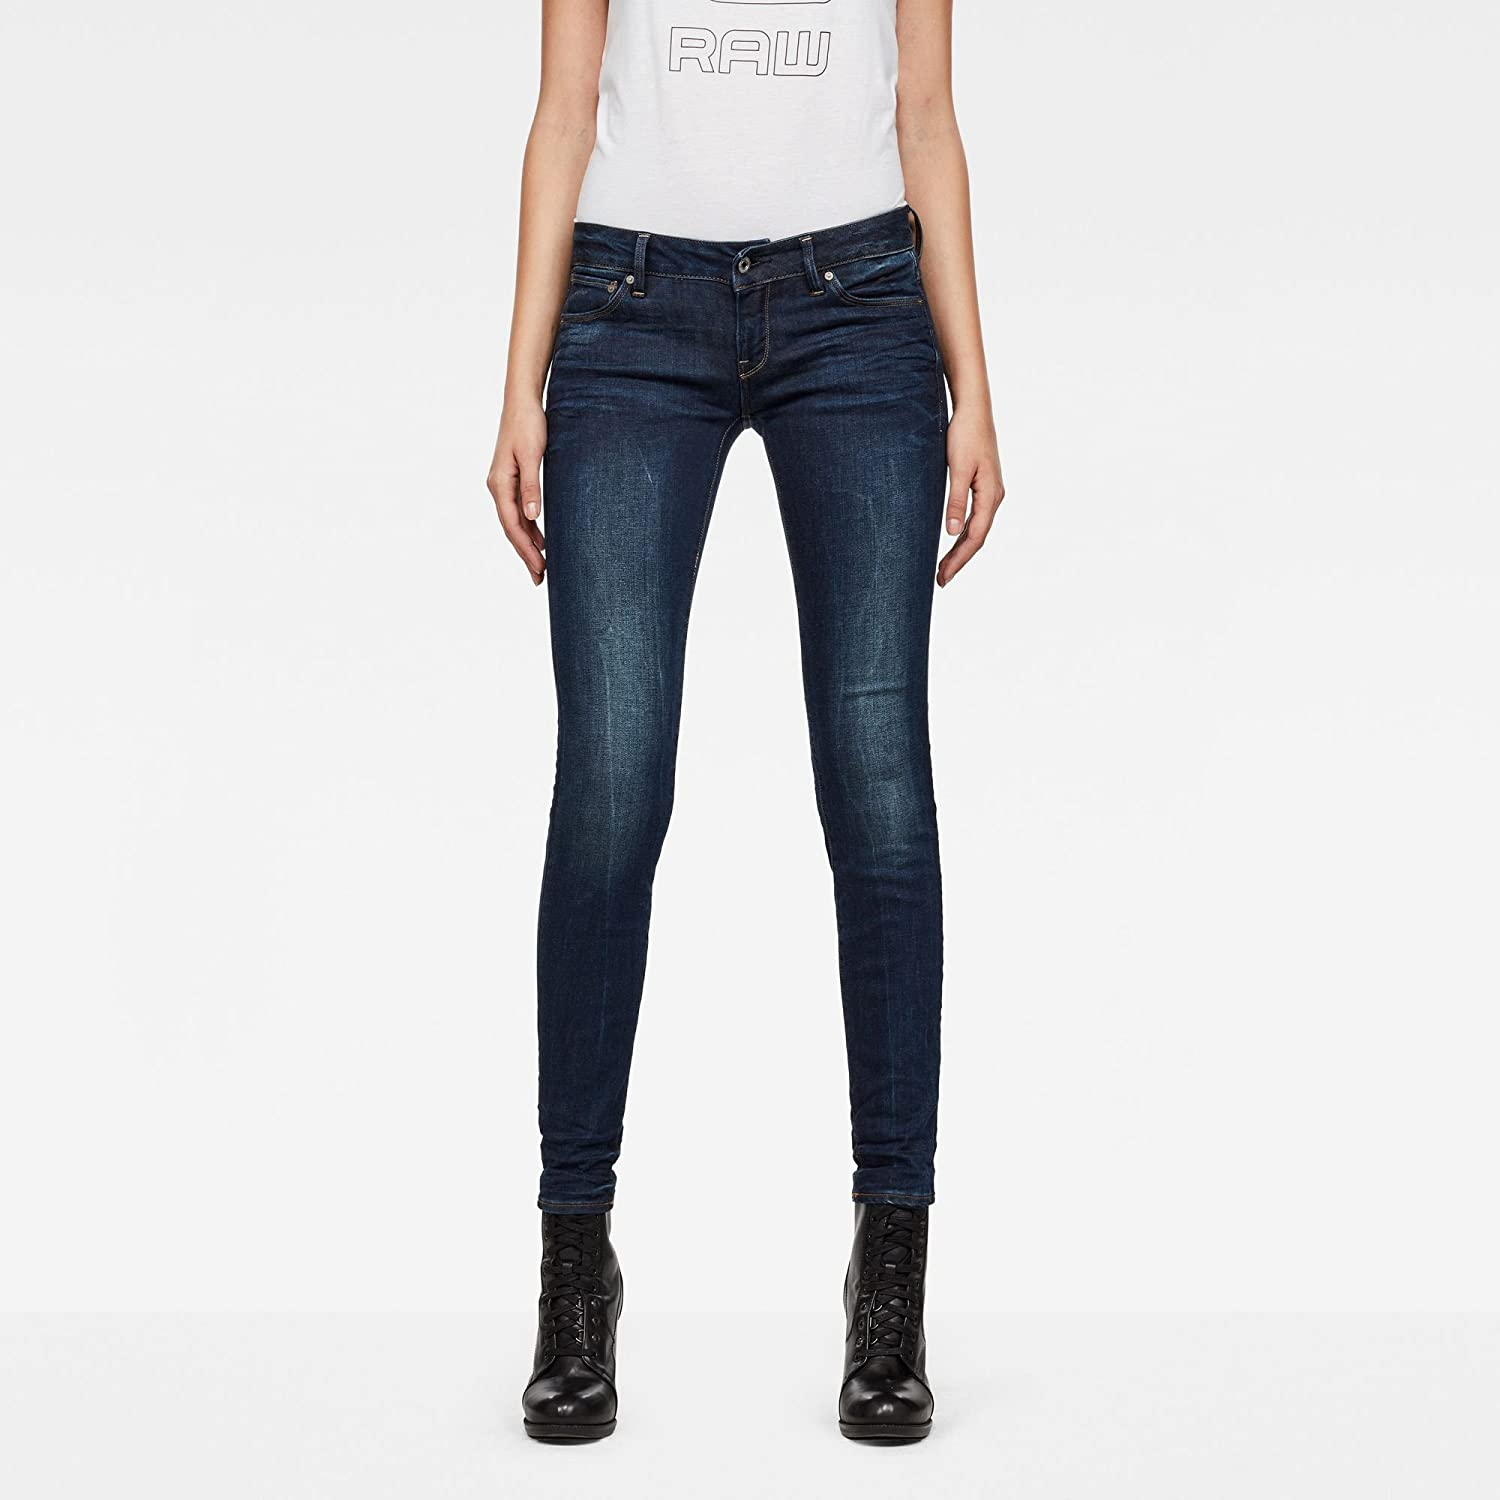 G-STAR RAW 60878-D003-Jeans Mujer